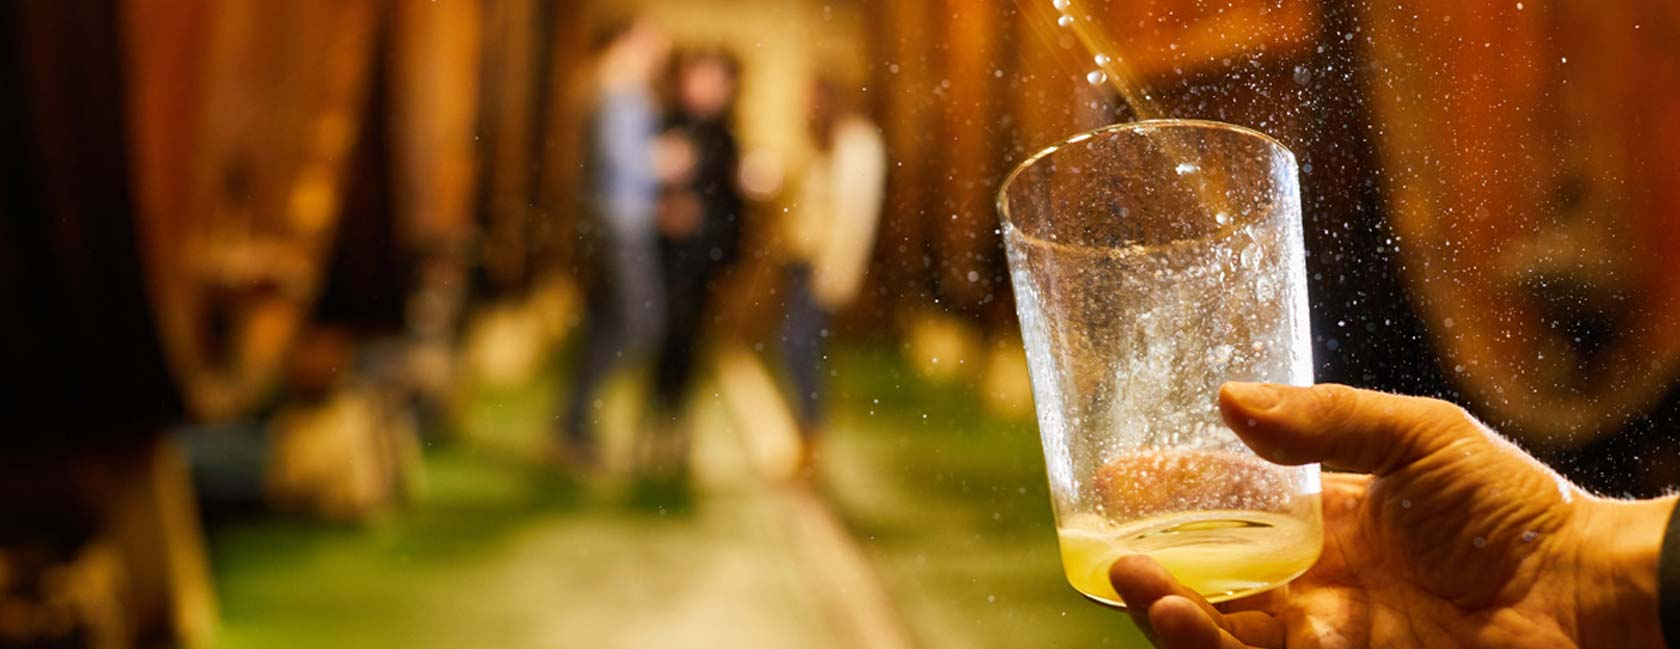 The cider season runs from the second fortnight in January until the end of April